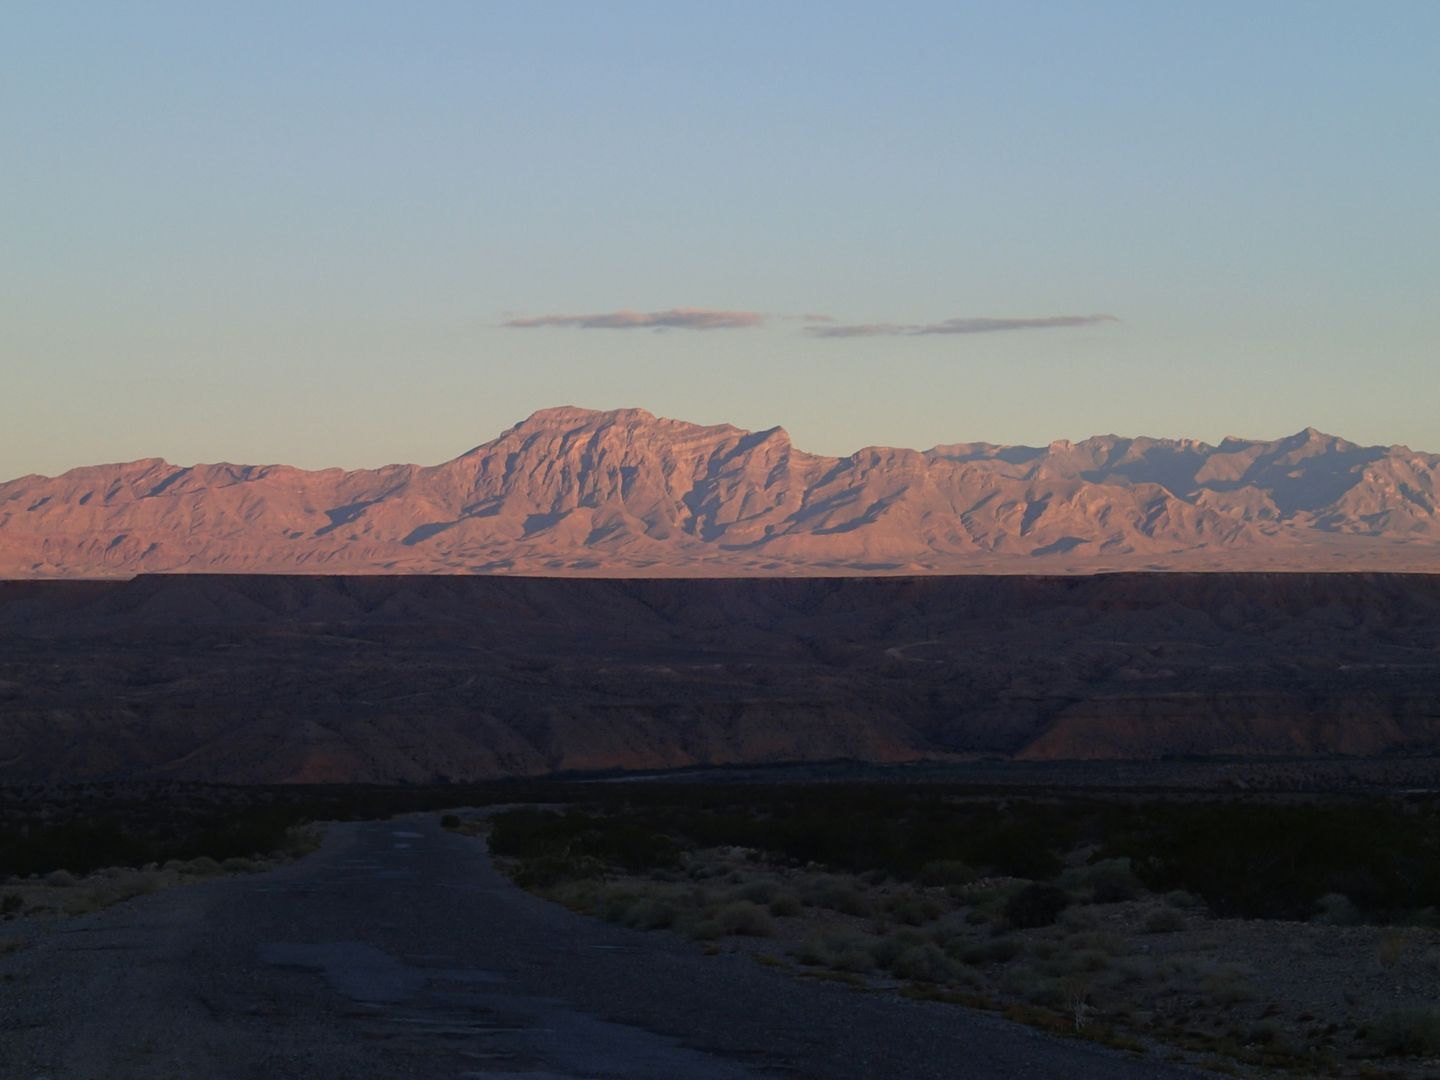 Gold Butte Backcountry Byway - Waypoint 3: View Looking Back